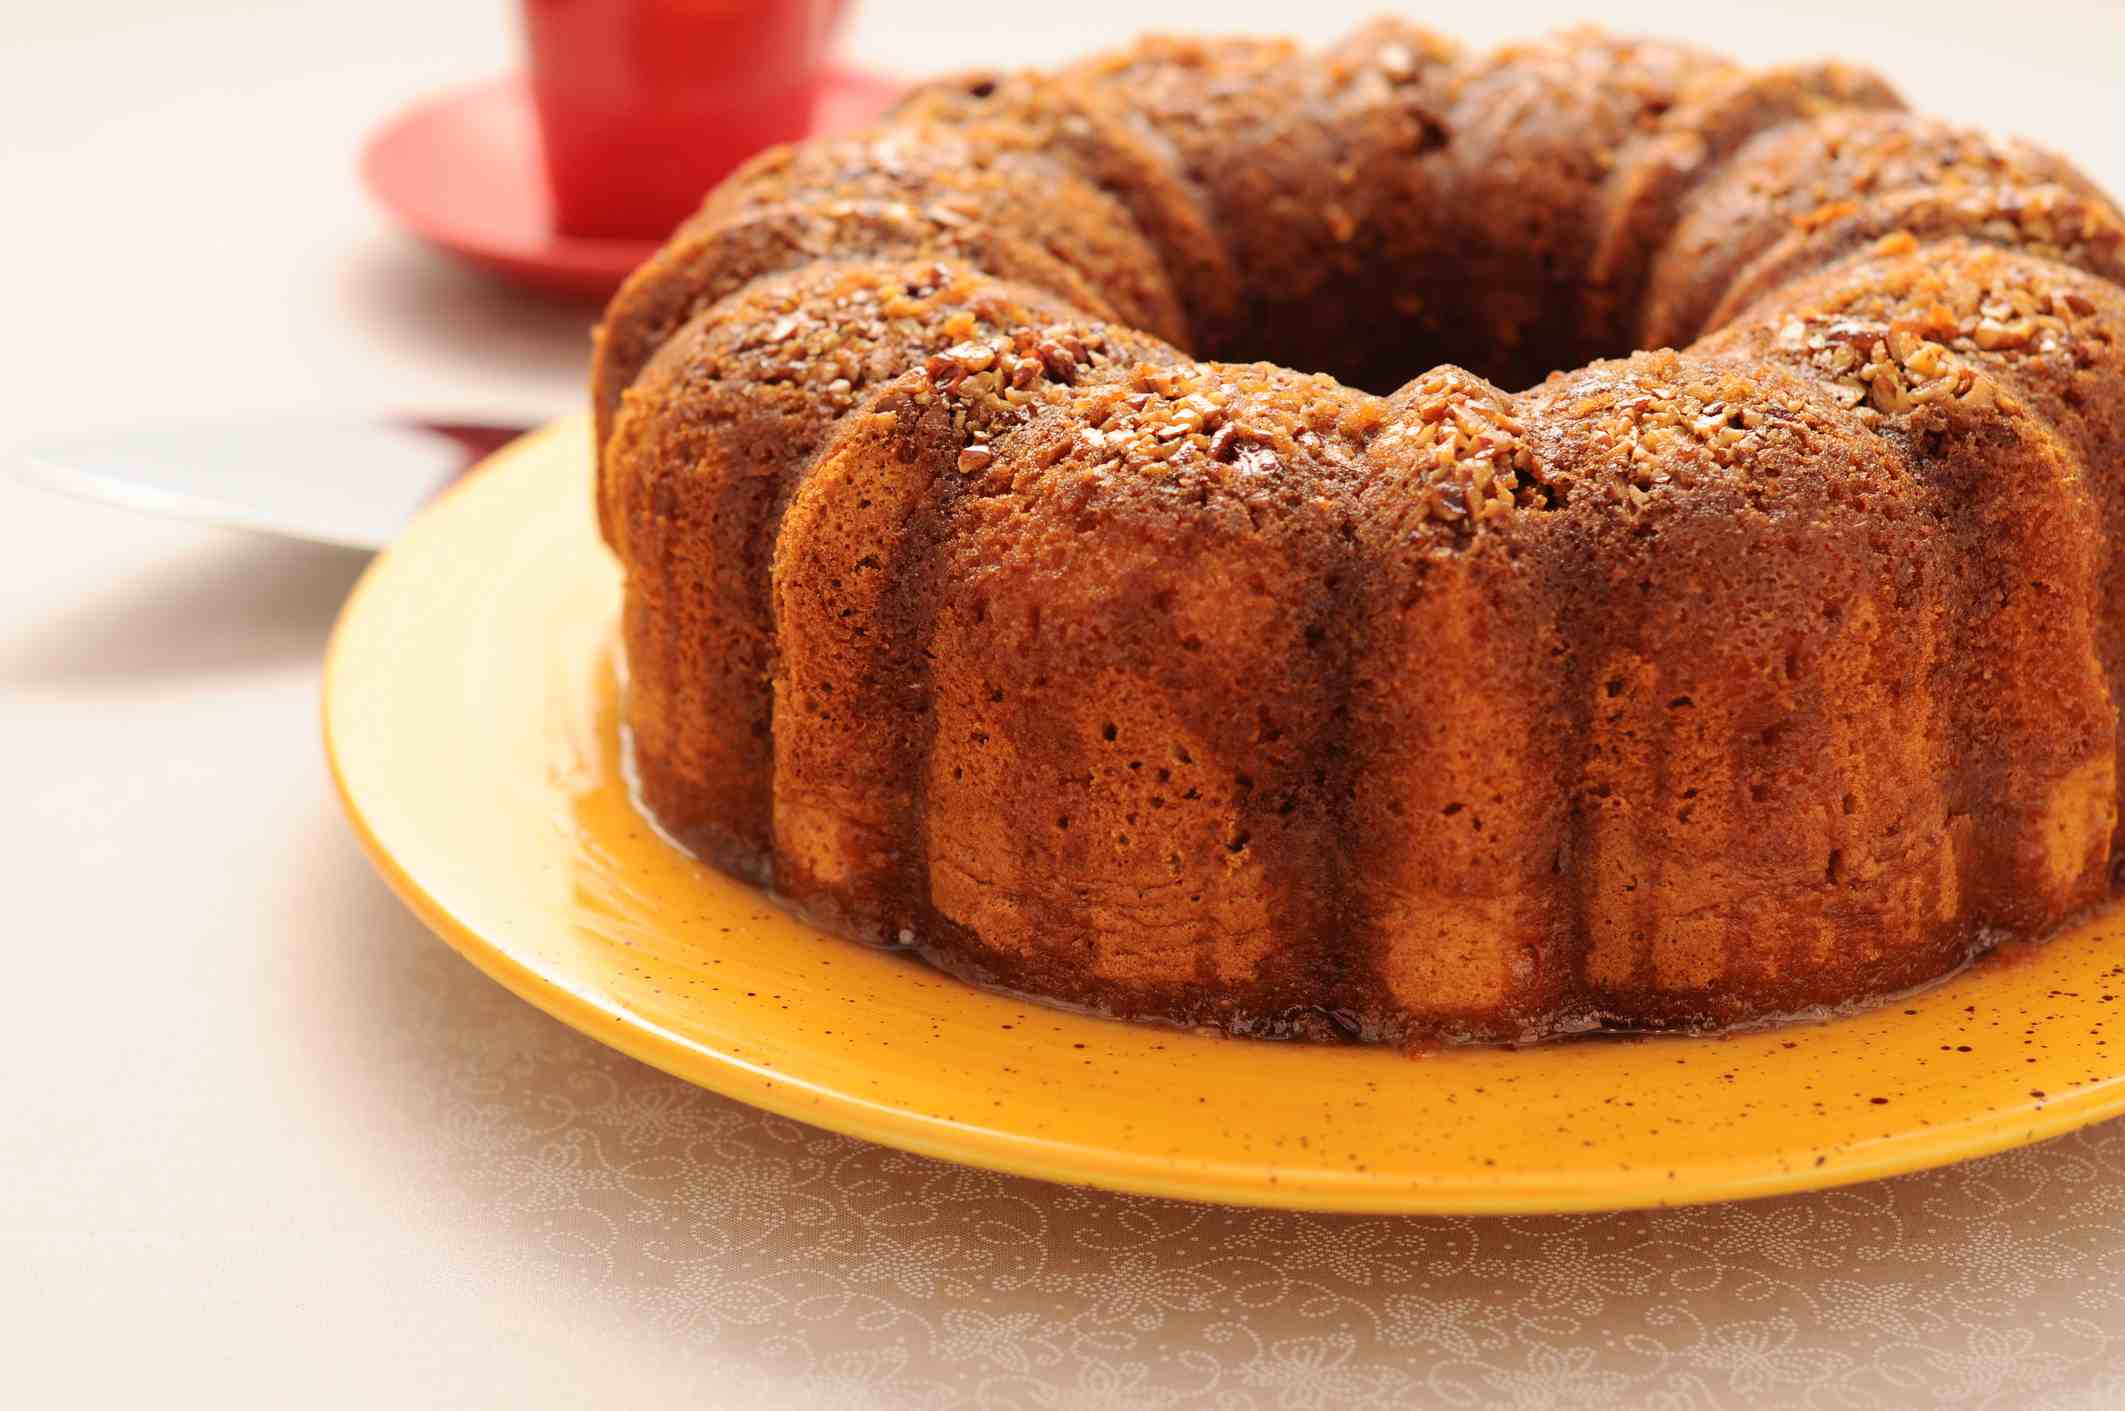 TEXAS ROCKIN' RUM CAKE   If you don't know, now you know. I've never tasted something so incredibly delicious as this rum cake. Formerly known as Sho' Nuff Rum Cakes and now Texas Rockin' Rum Cakes, this family owned East Texas institution has been a part of our family's holiday for longer than I can remember. Year after year we order these rum cakes in their festive holiday cake tins and give them out to all of our friends.